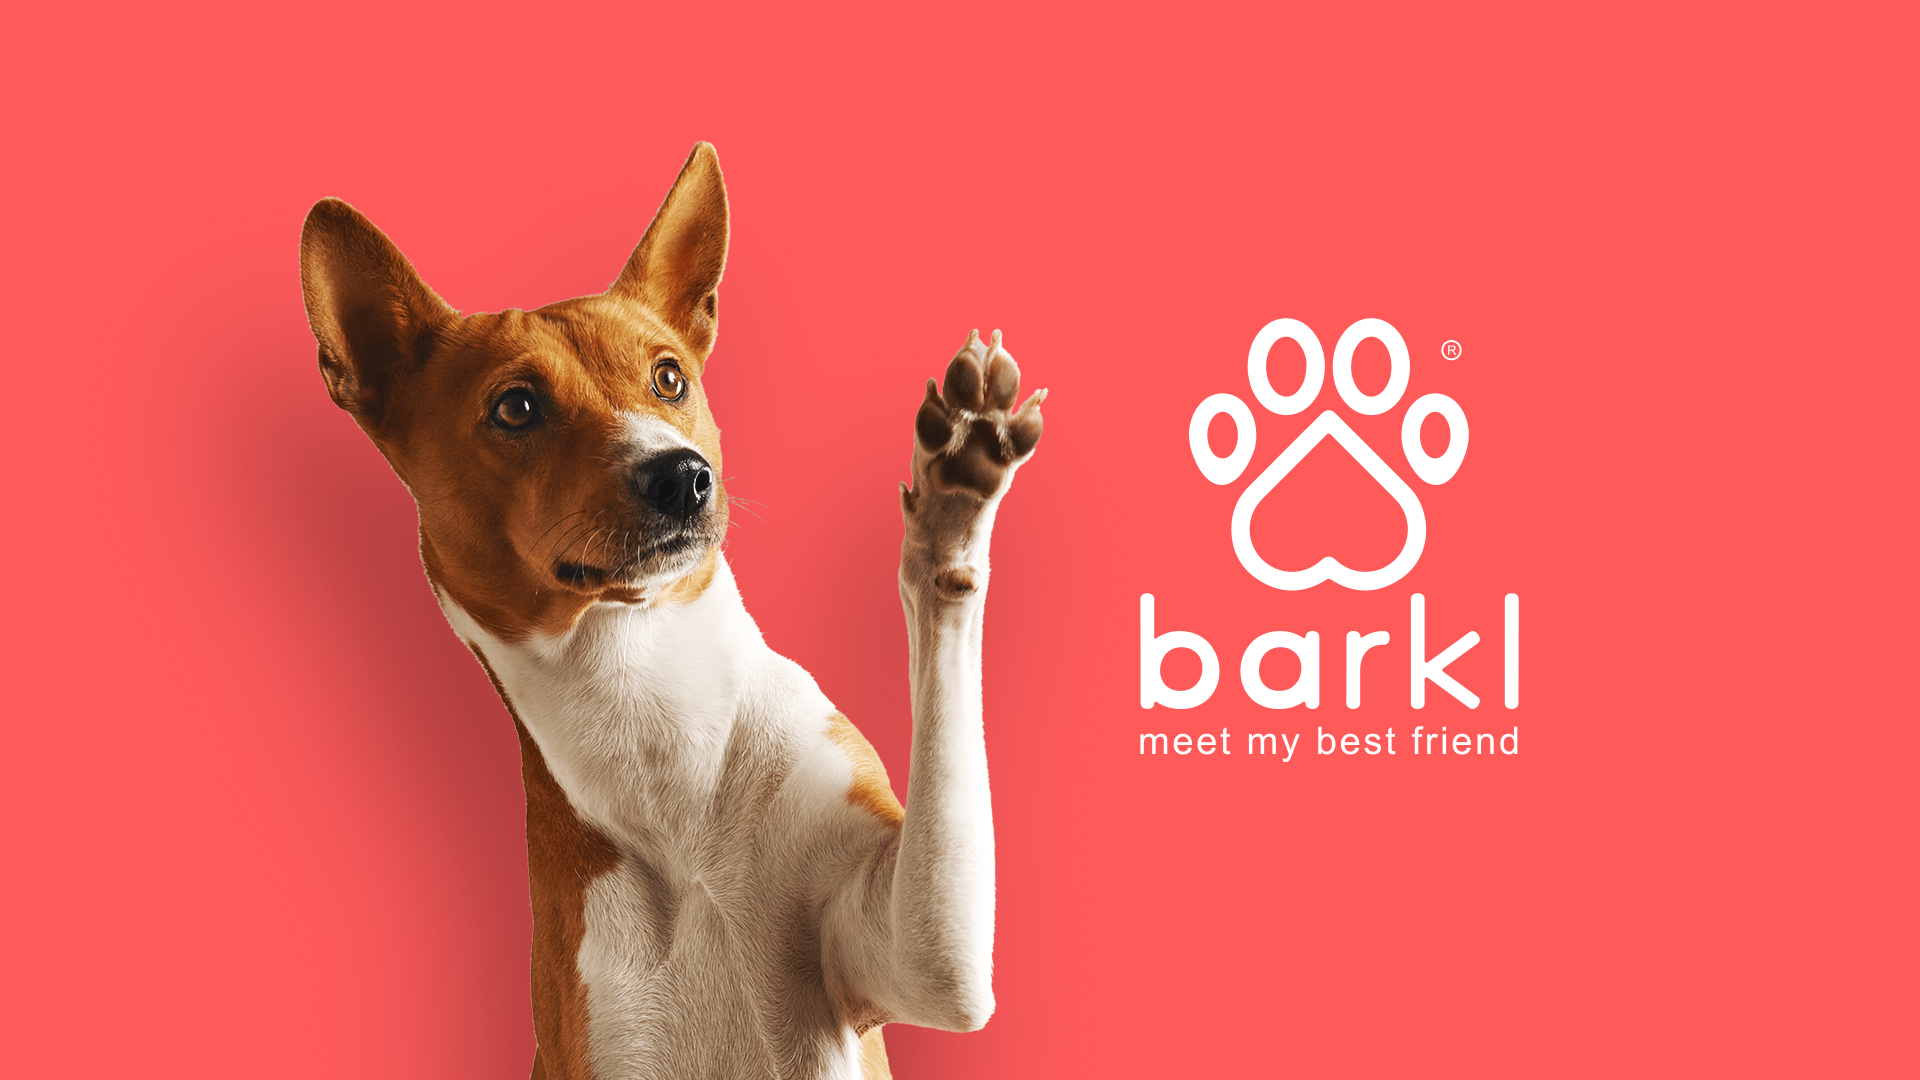 Find fellow dog guardians to connect with and build a lifelong bond with man's best friends.